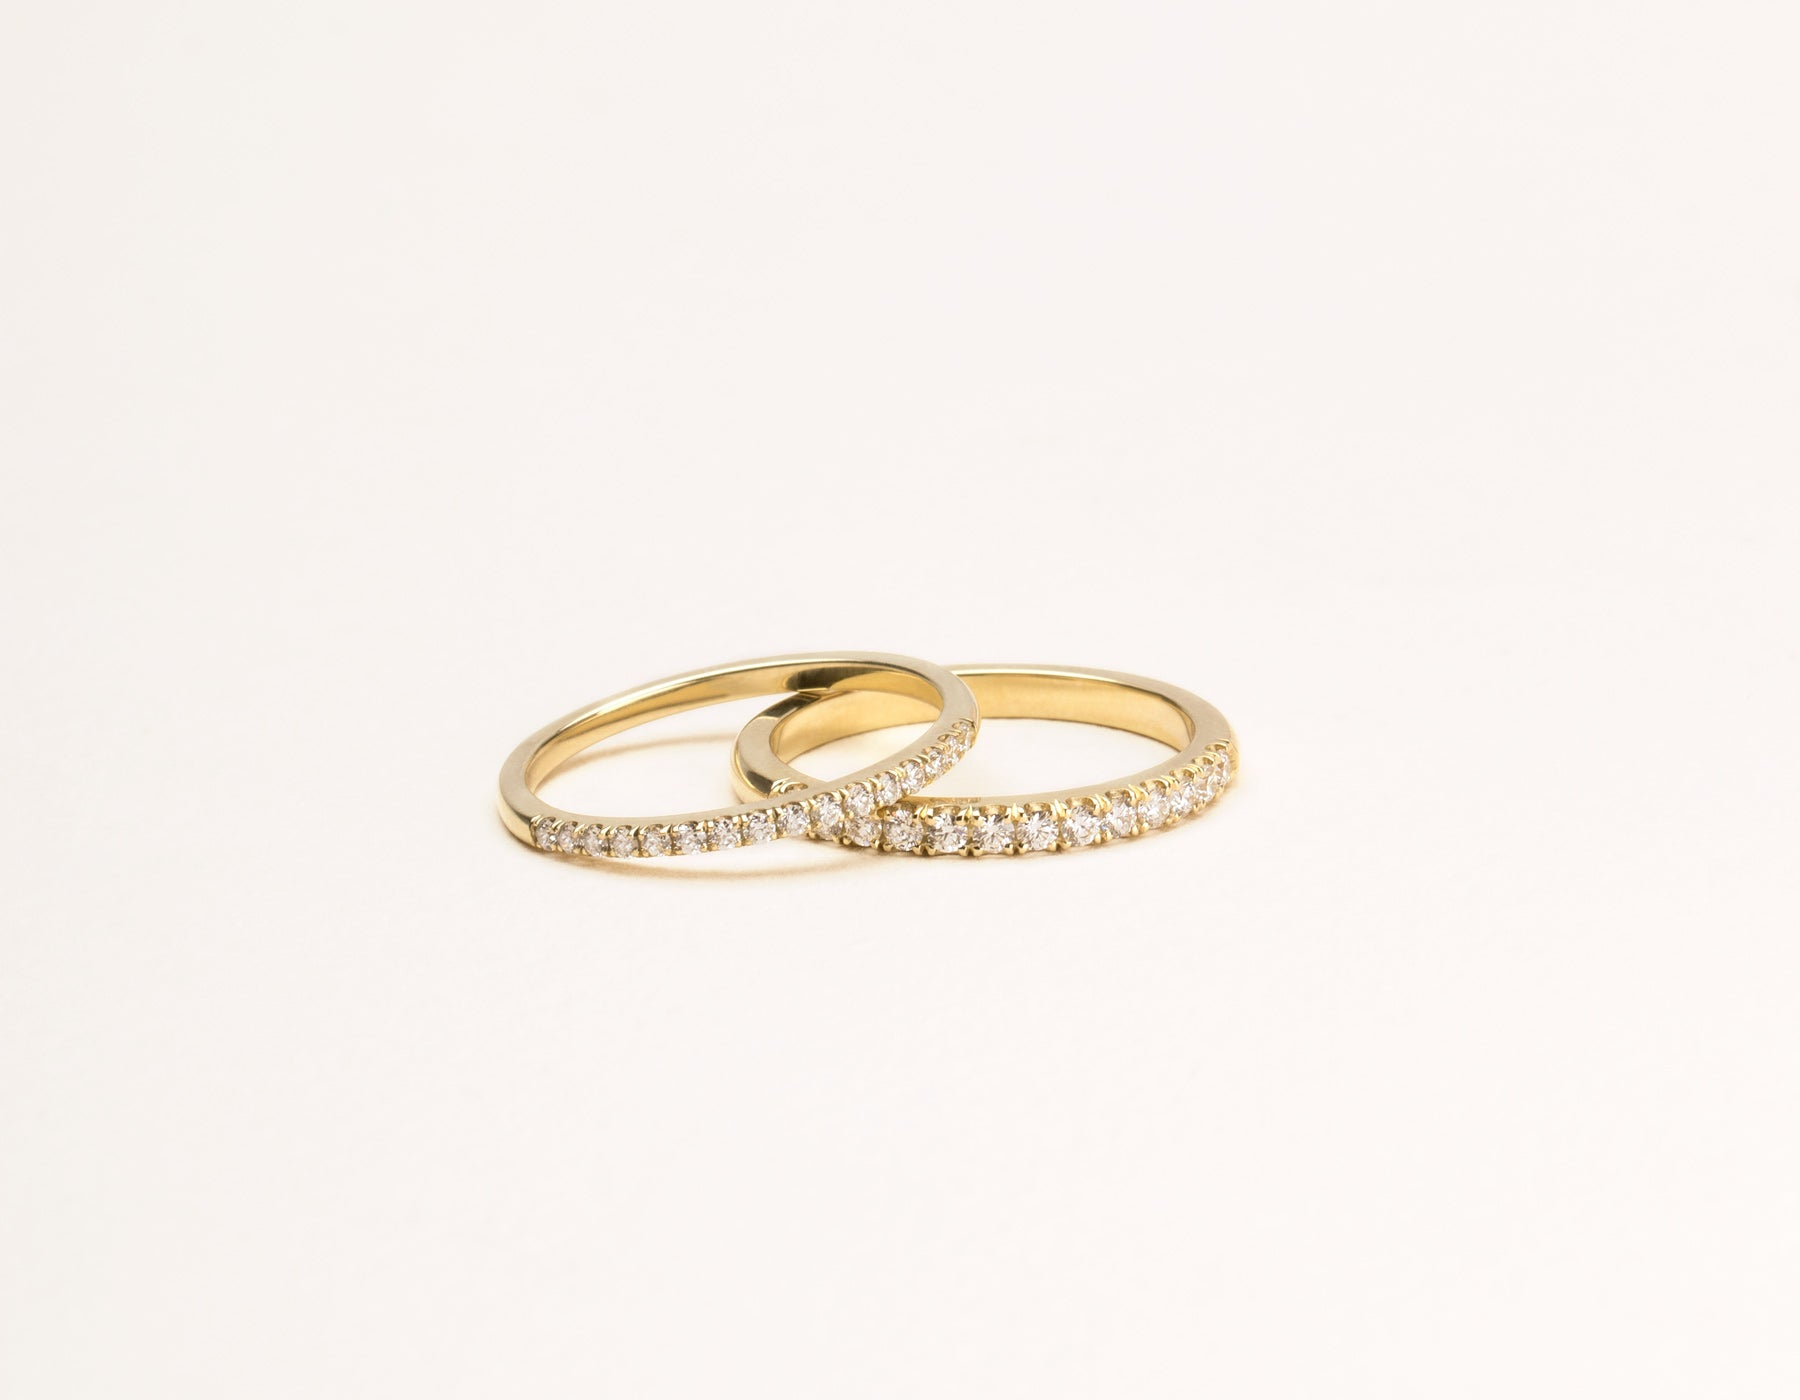 Classic minimalist Large Diamond Pave Band ring pair Vrai & Oro sustainable jewelry, 14K Yellow Gold